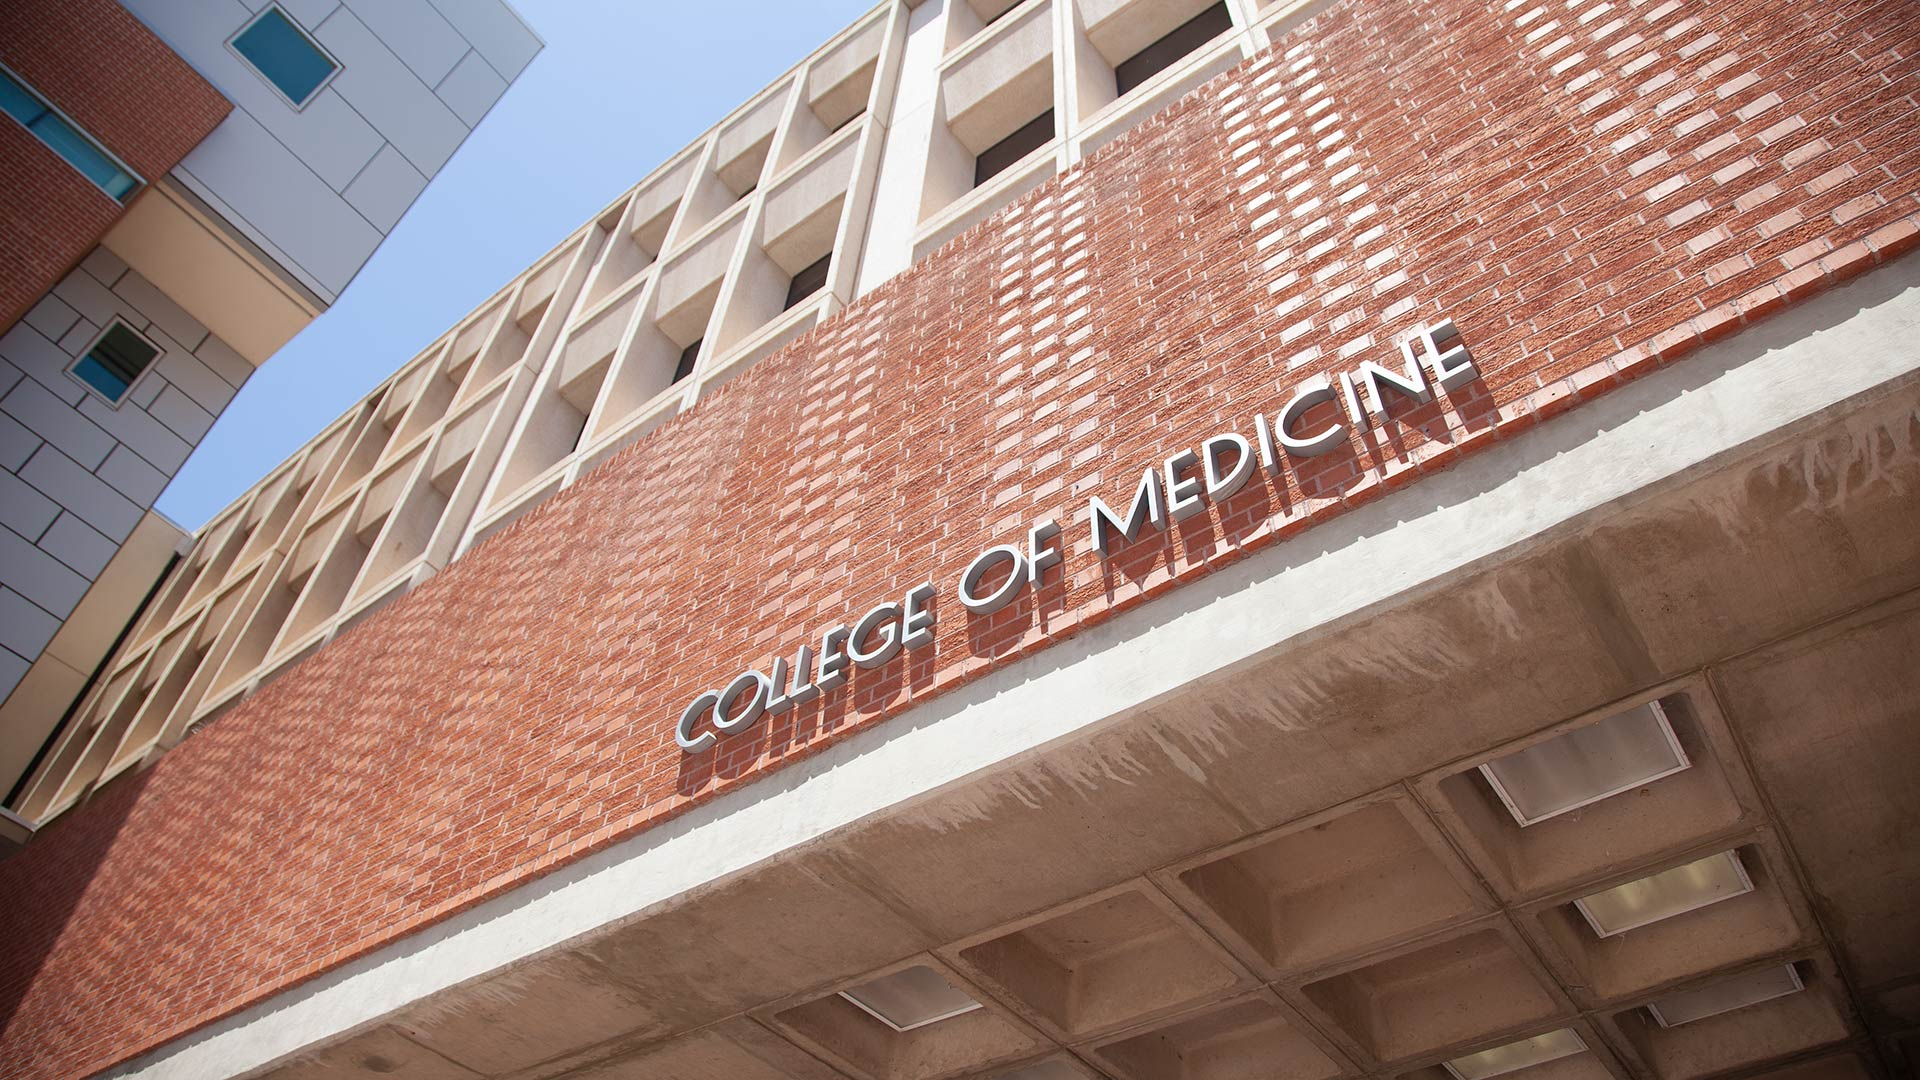 The University of Arizona College of Medicine.